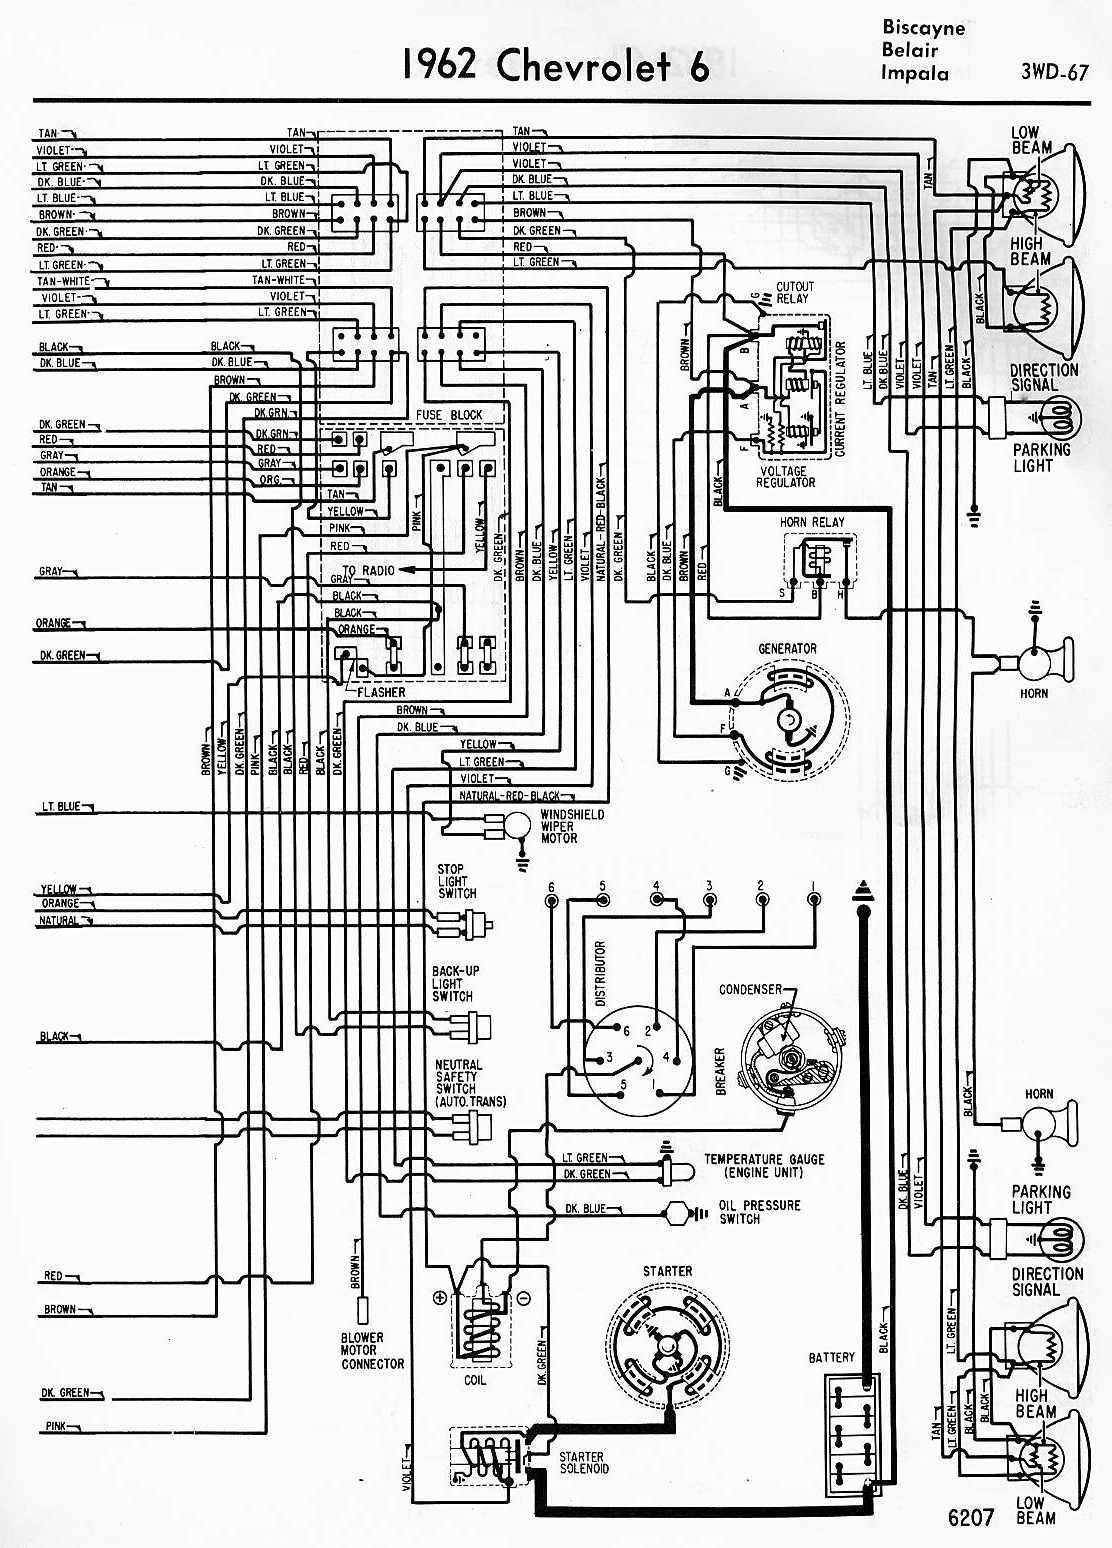 hight resolution of 1962 chevy c10 wiring diagram wiring diagram schematics 1960 chevy wiring diagram 1962 chevy wiring diagram